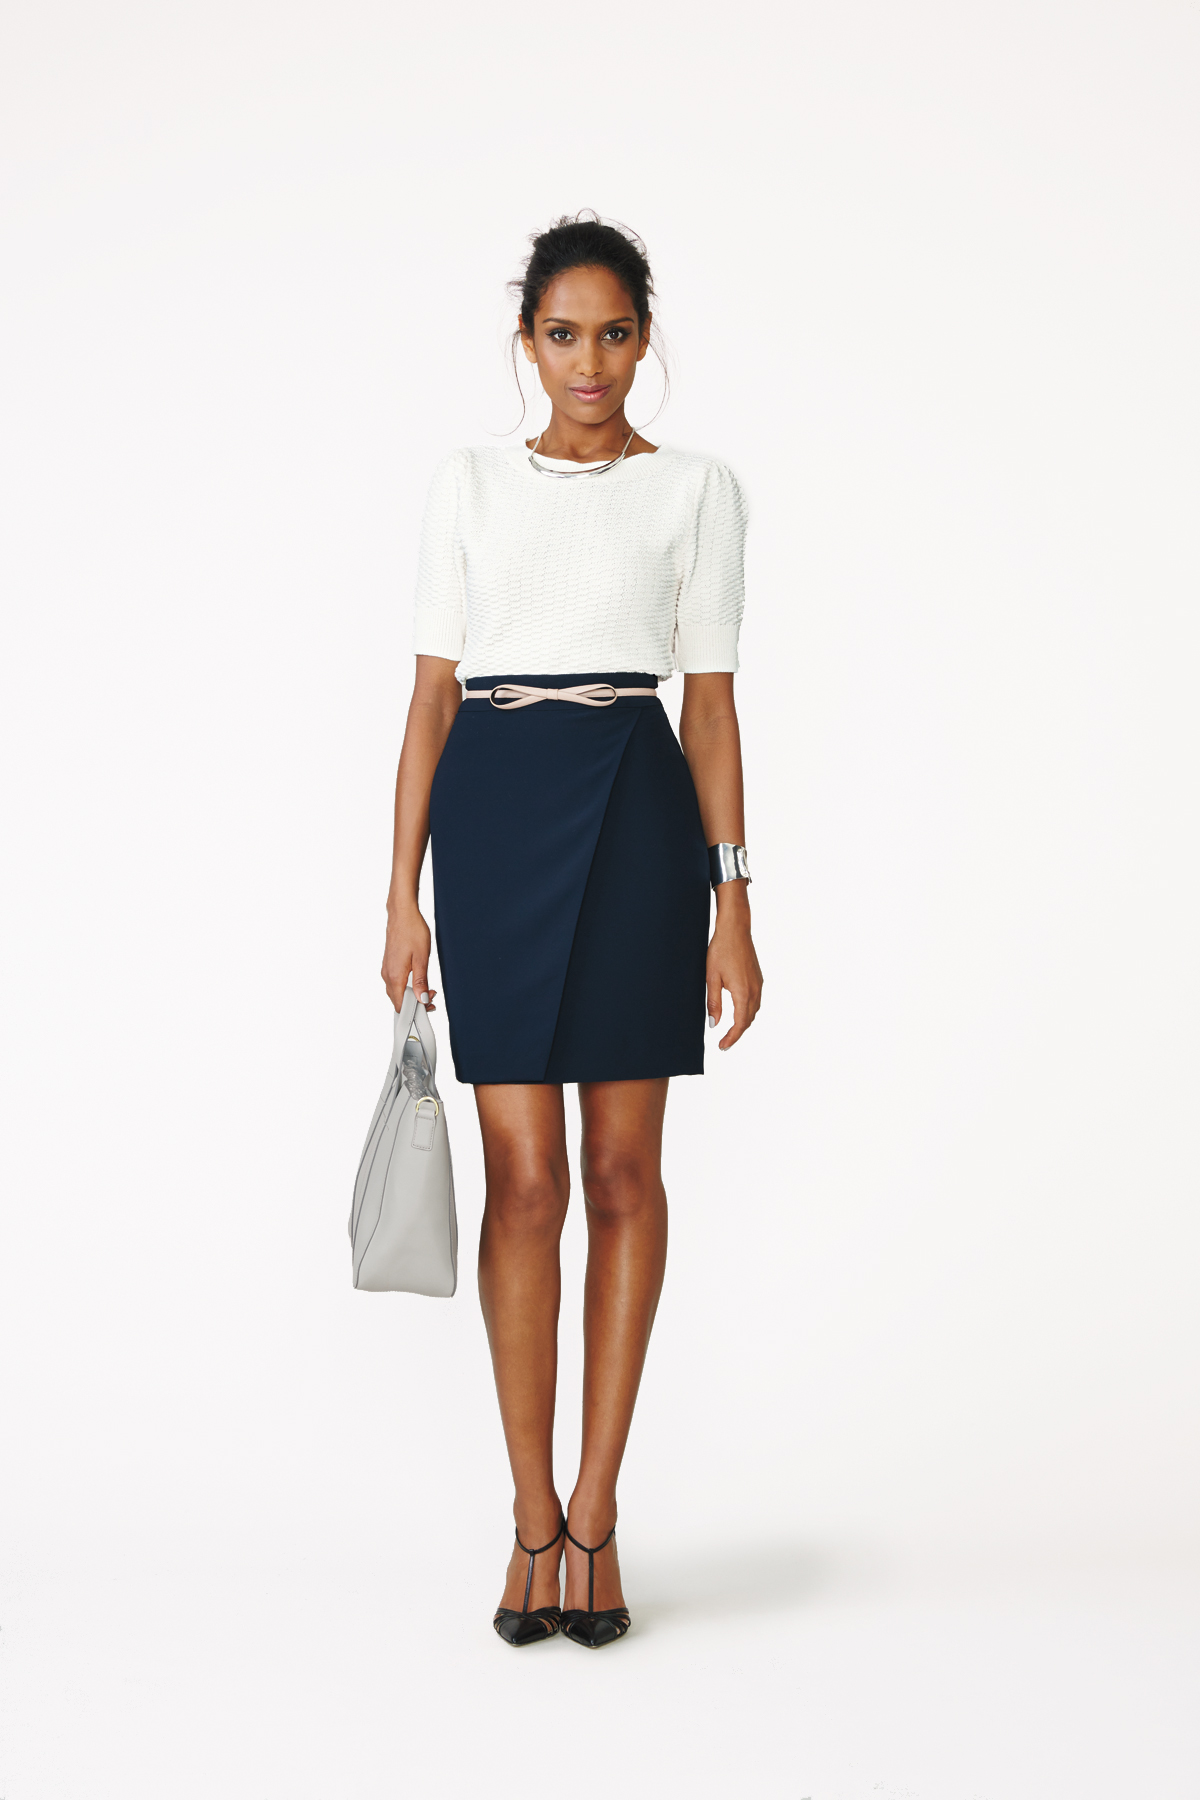 Sweater + Belt + Pencil Skirt + Heels